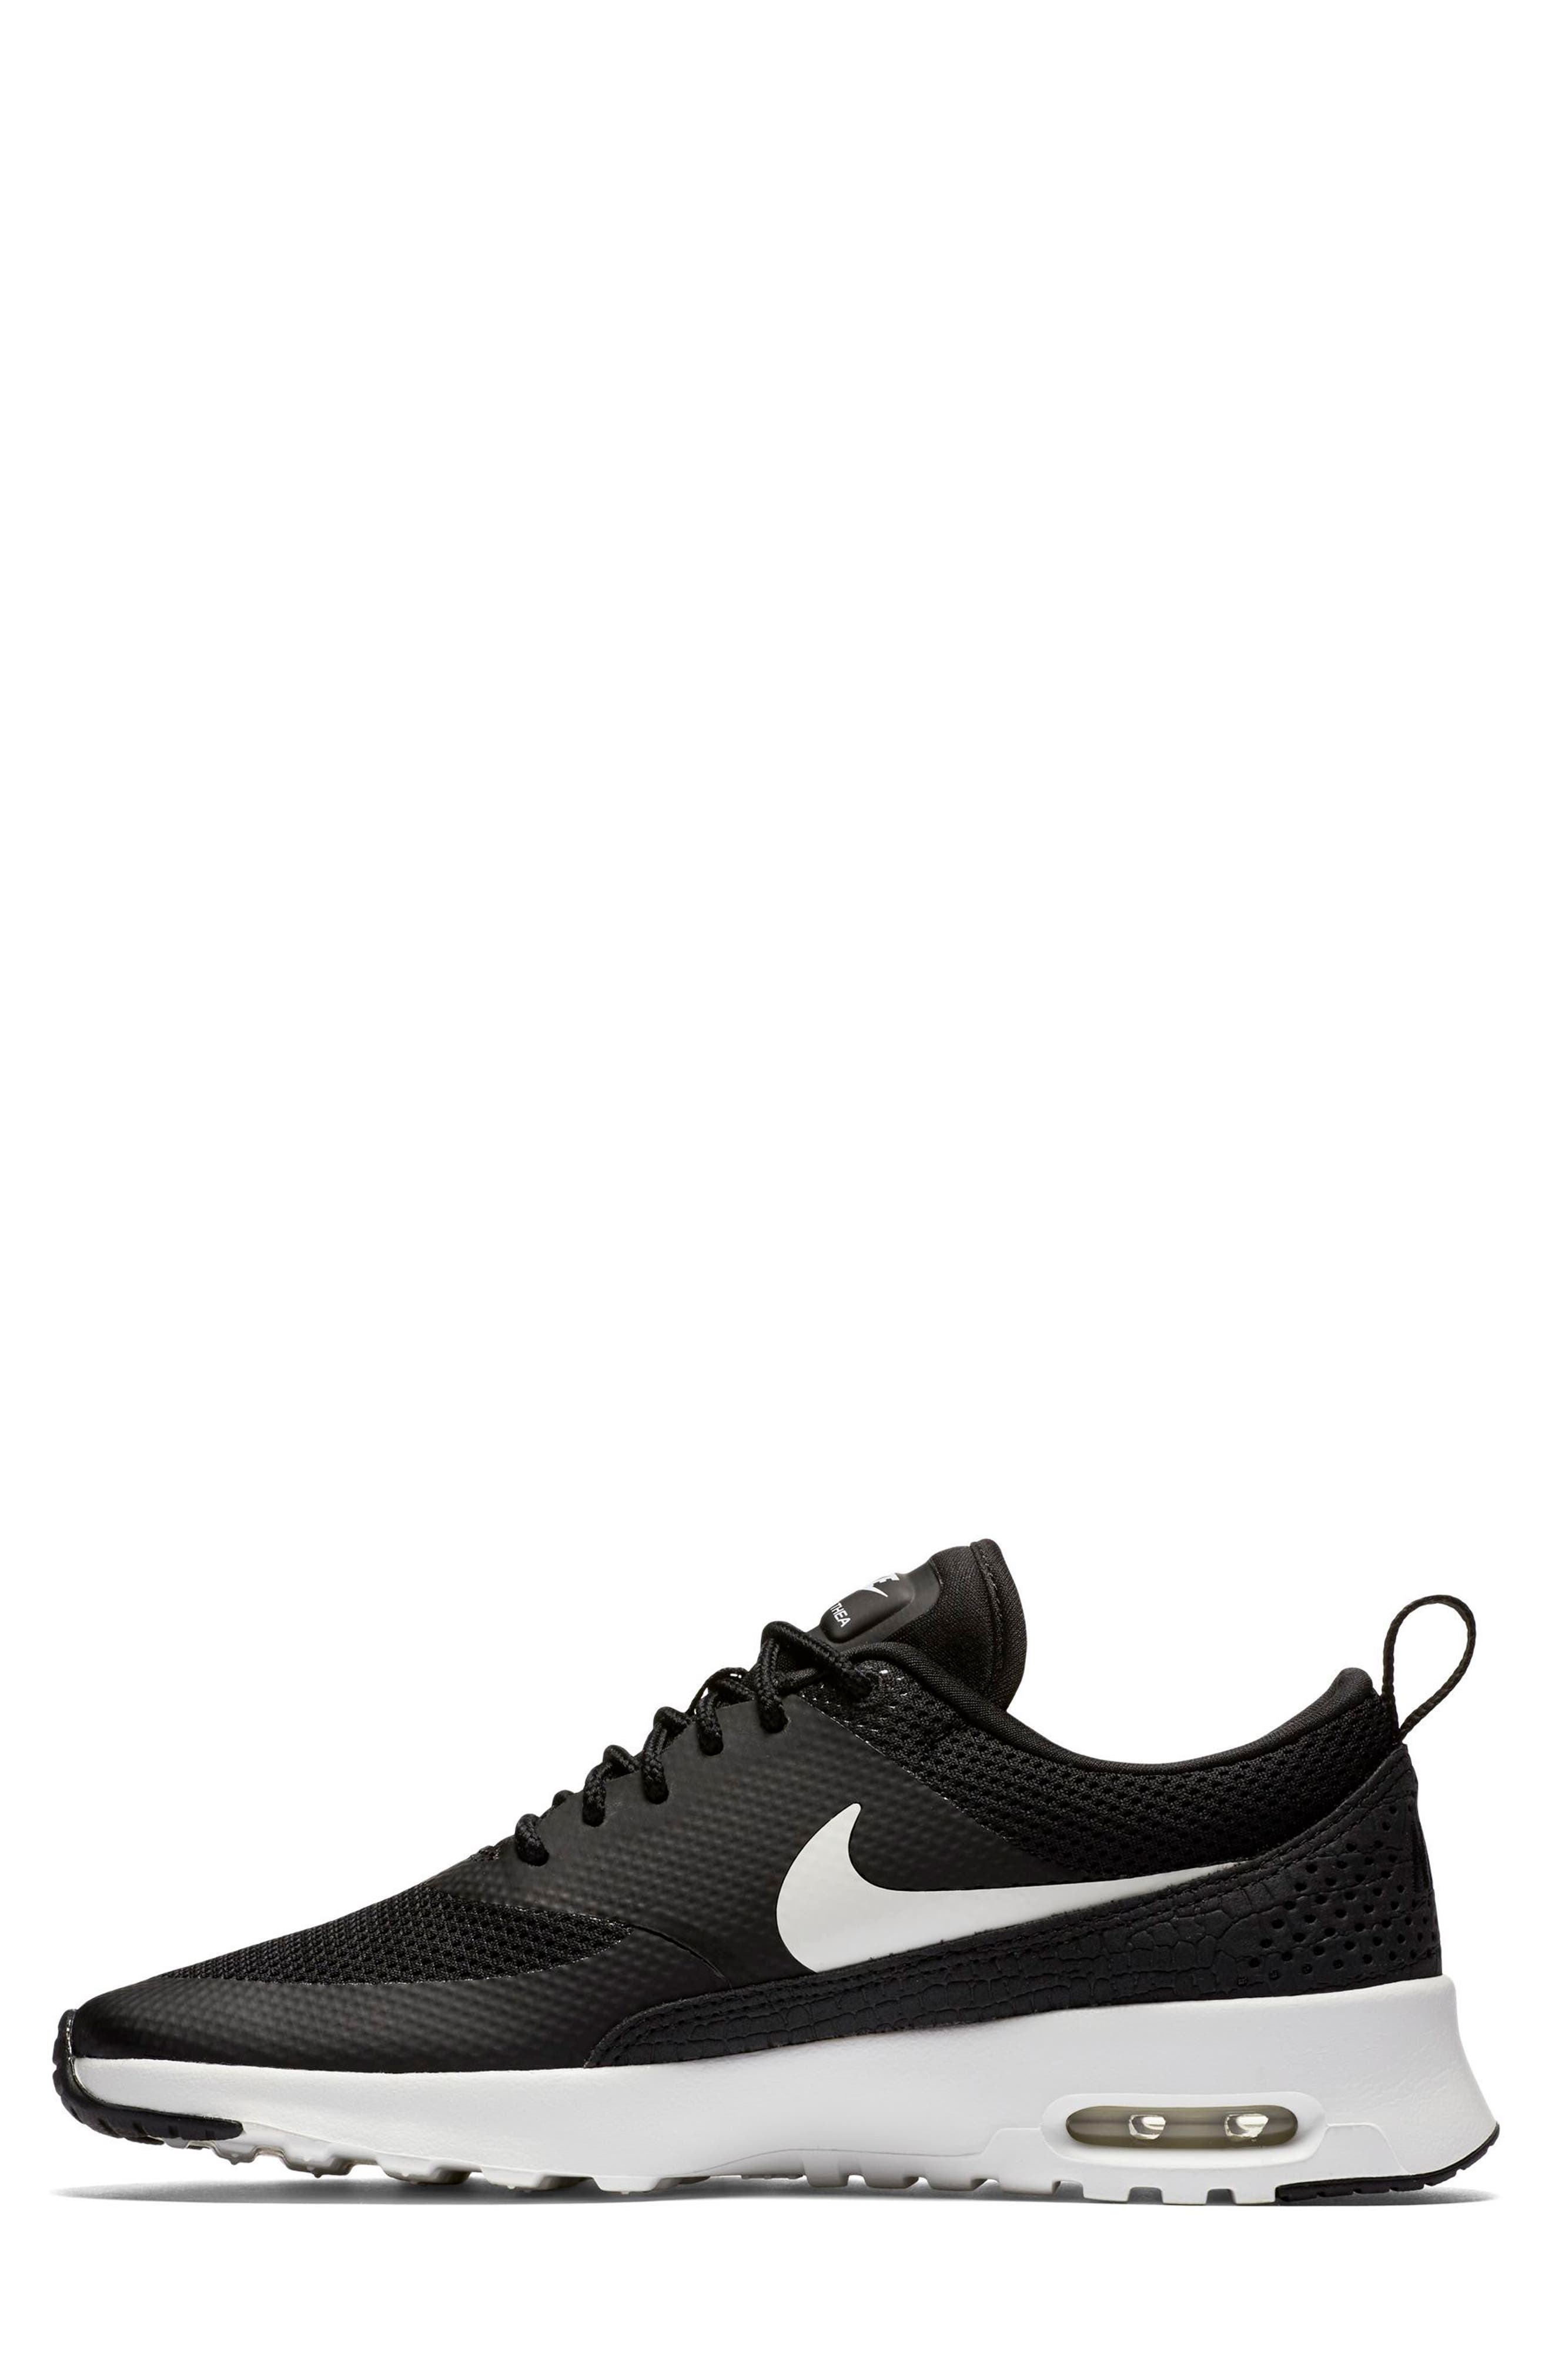 Air Max Thea Sneaker,                             Alternate thumbnail 2, color,                             Black/ Summit White